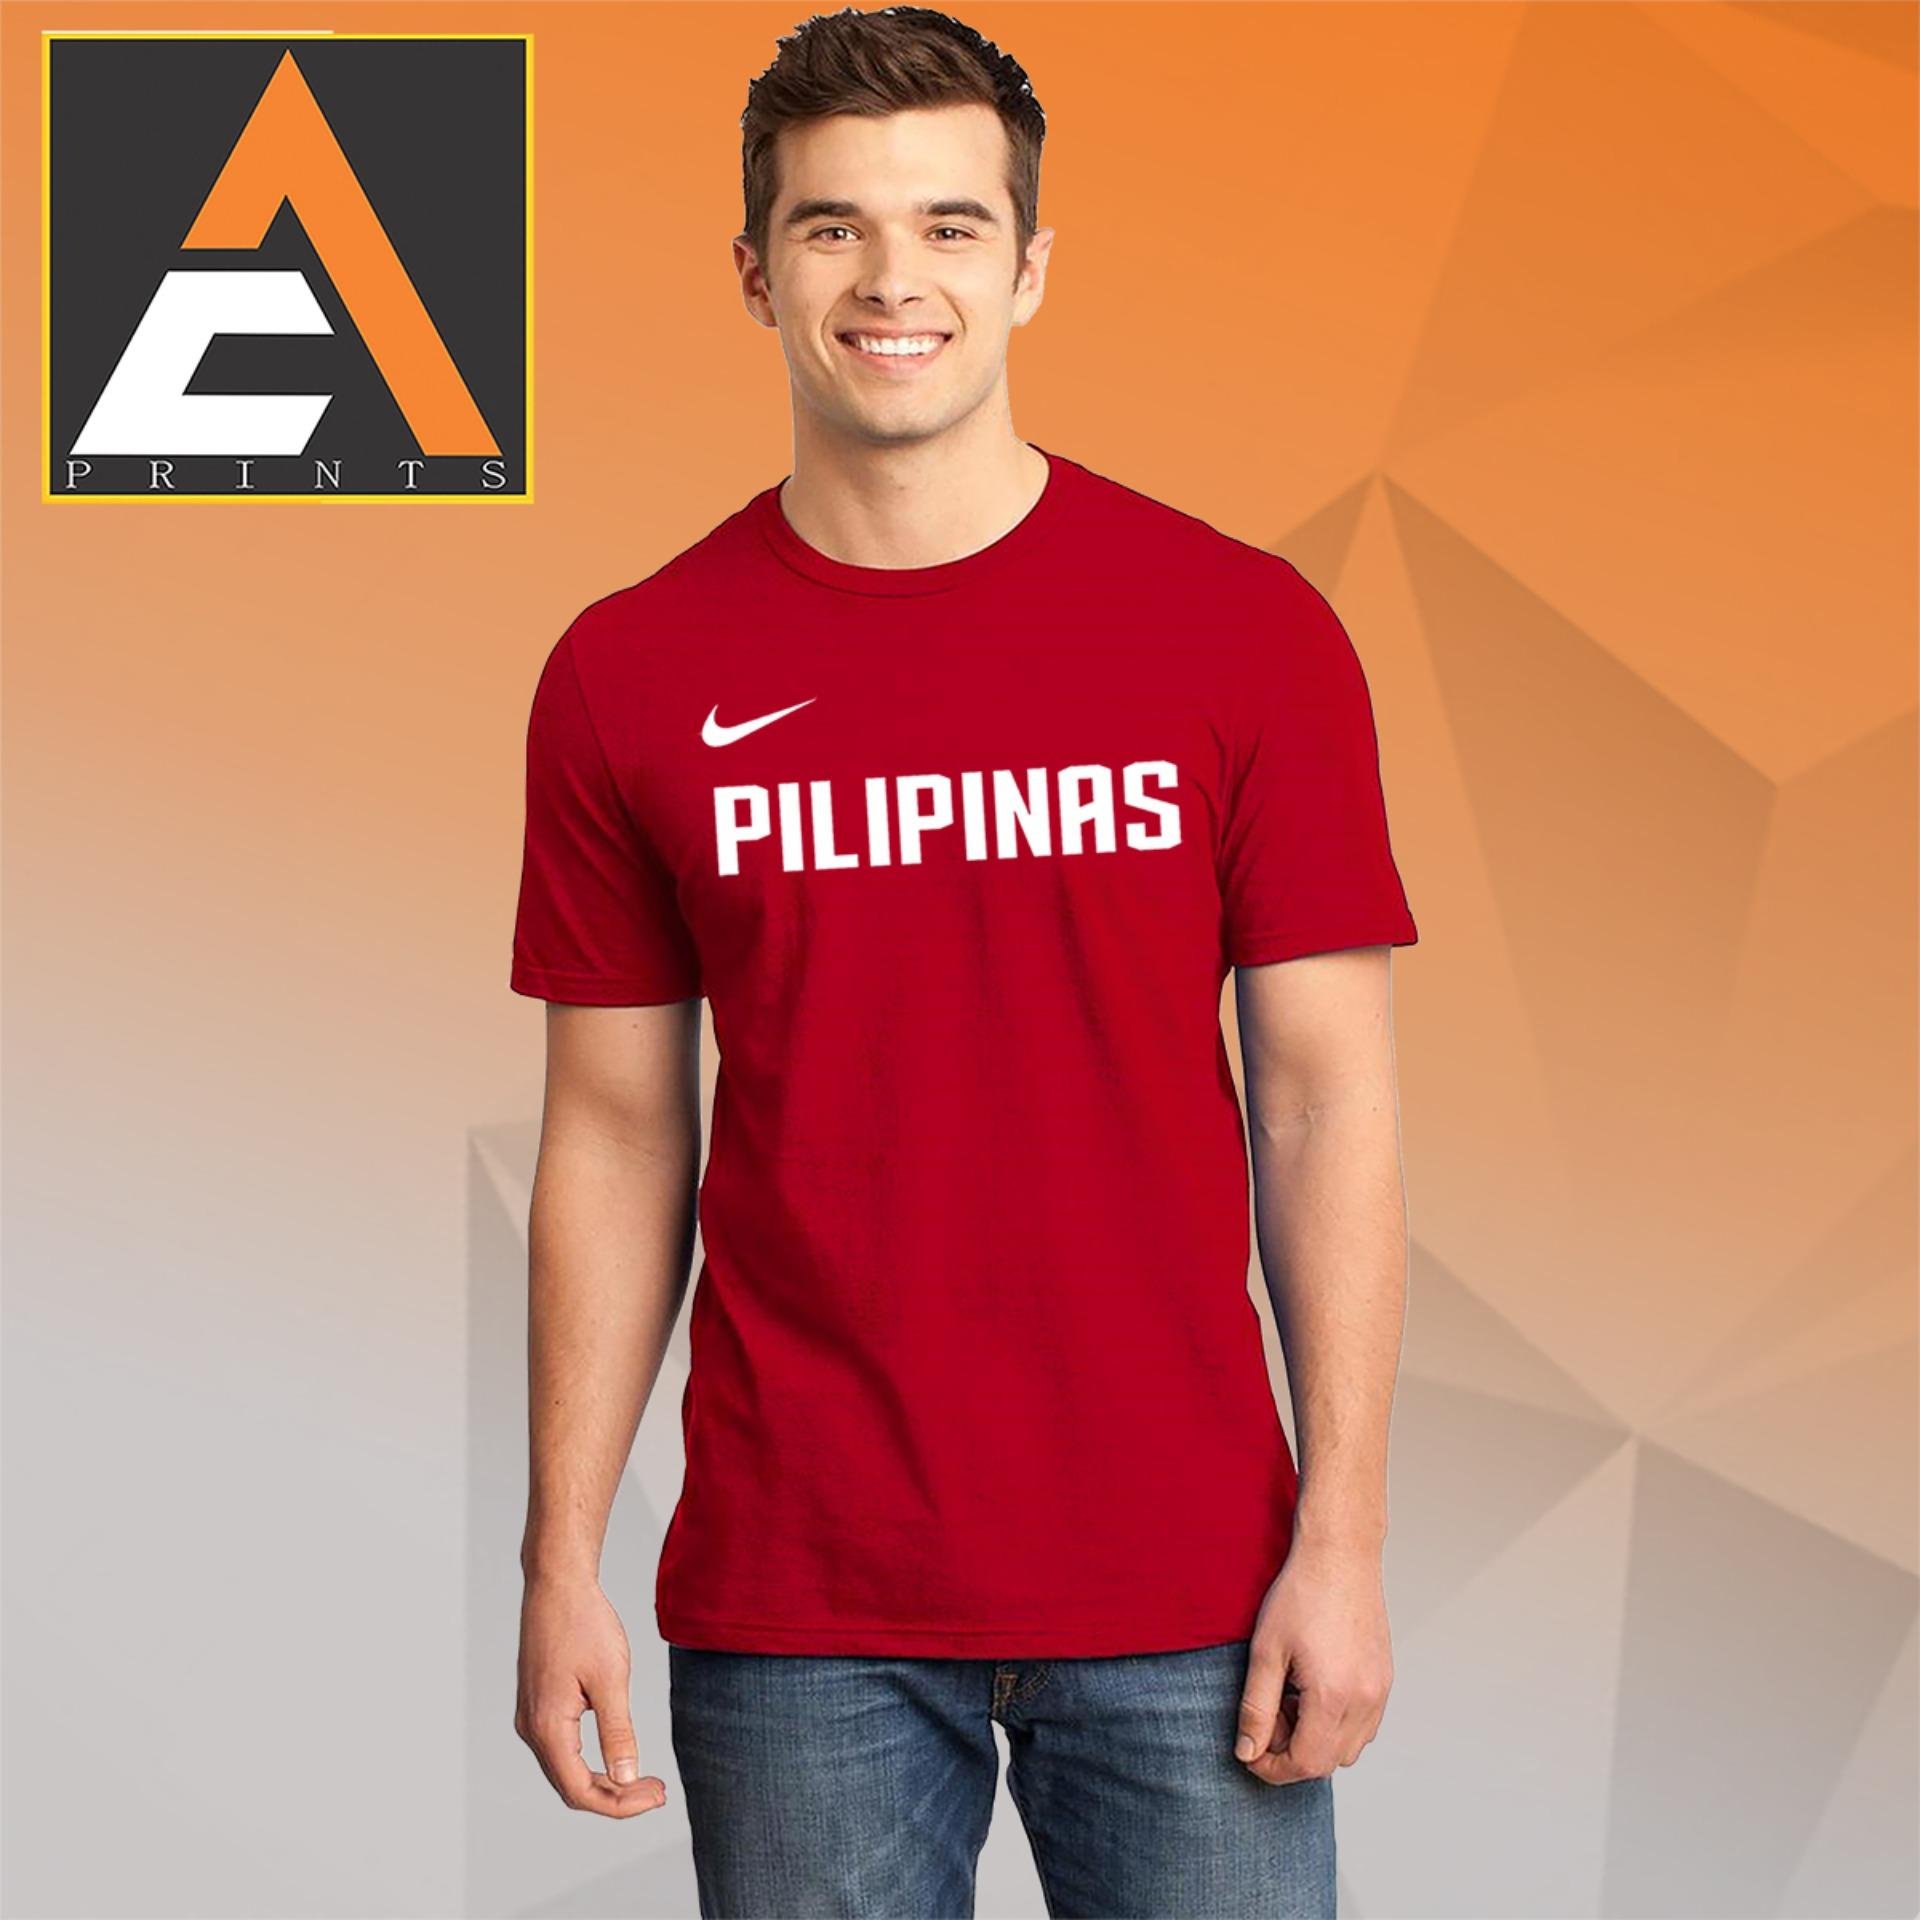 a0f31c0c896 Gilas Pilipinas t shirt Basketball Shirt Unisex(Men Women)(Male Female